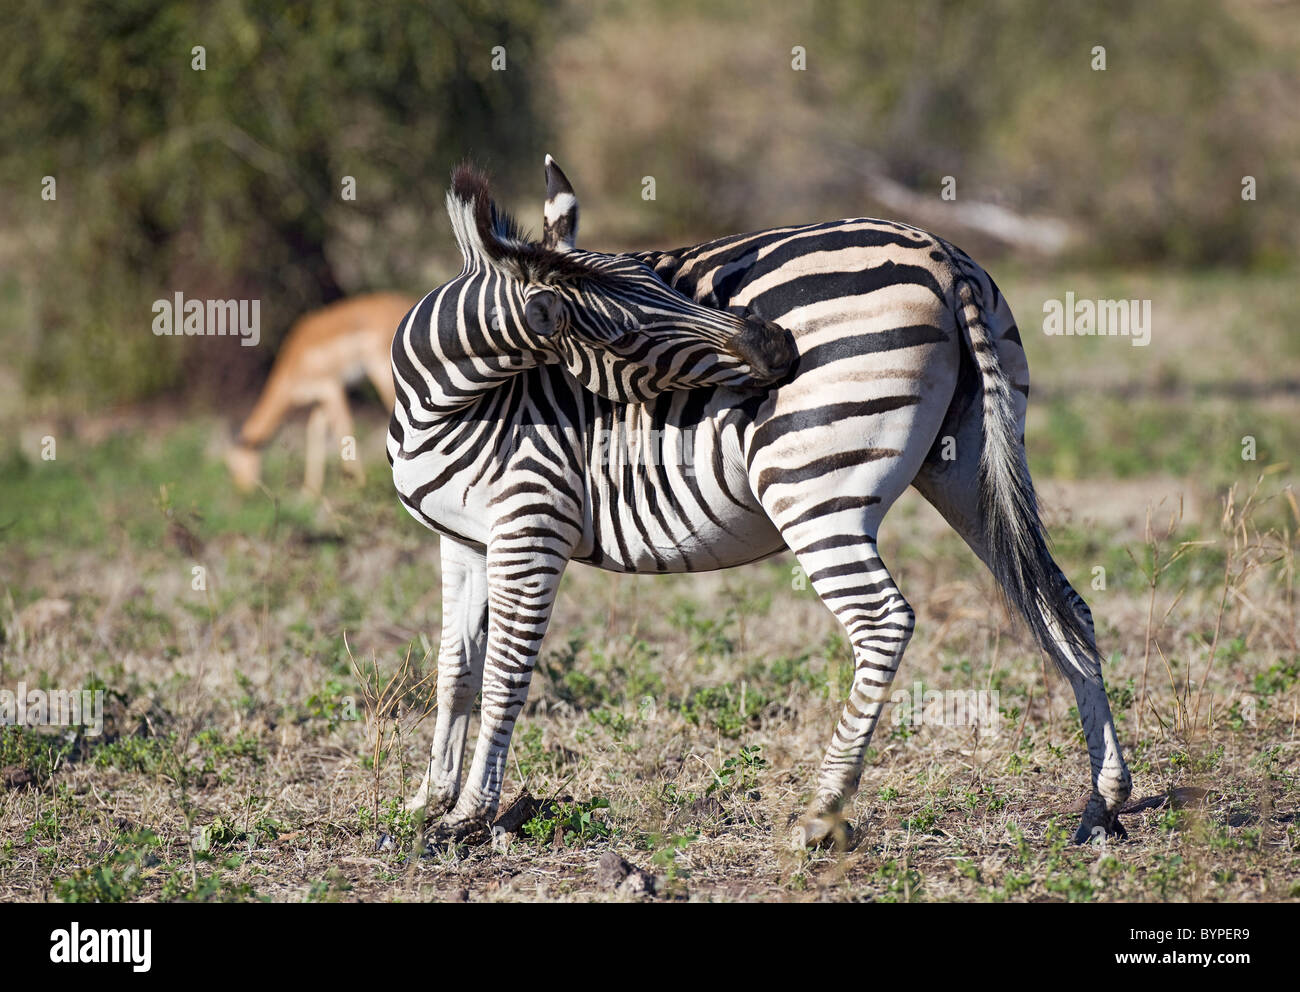 African Zebra in South Africa Stock Photo